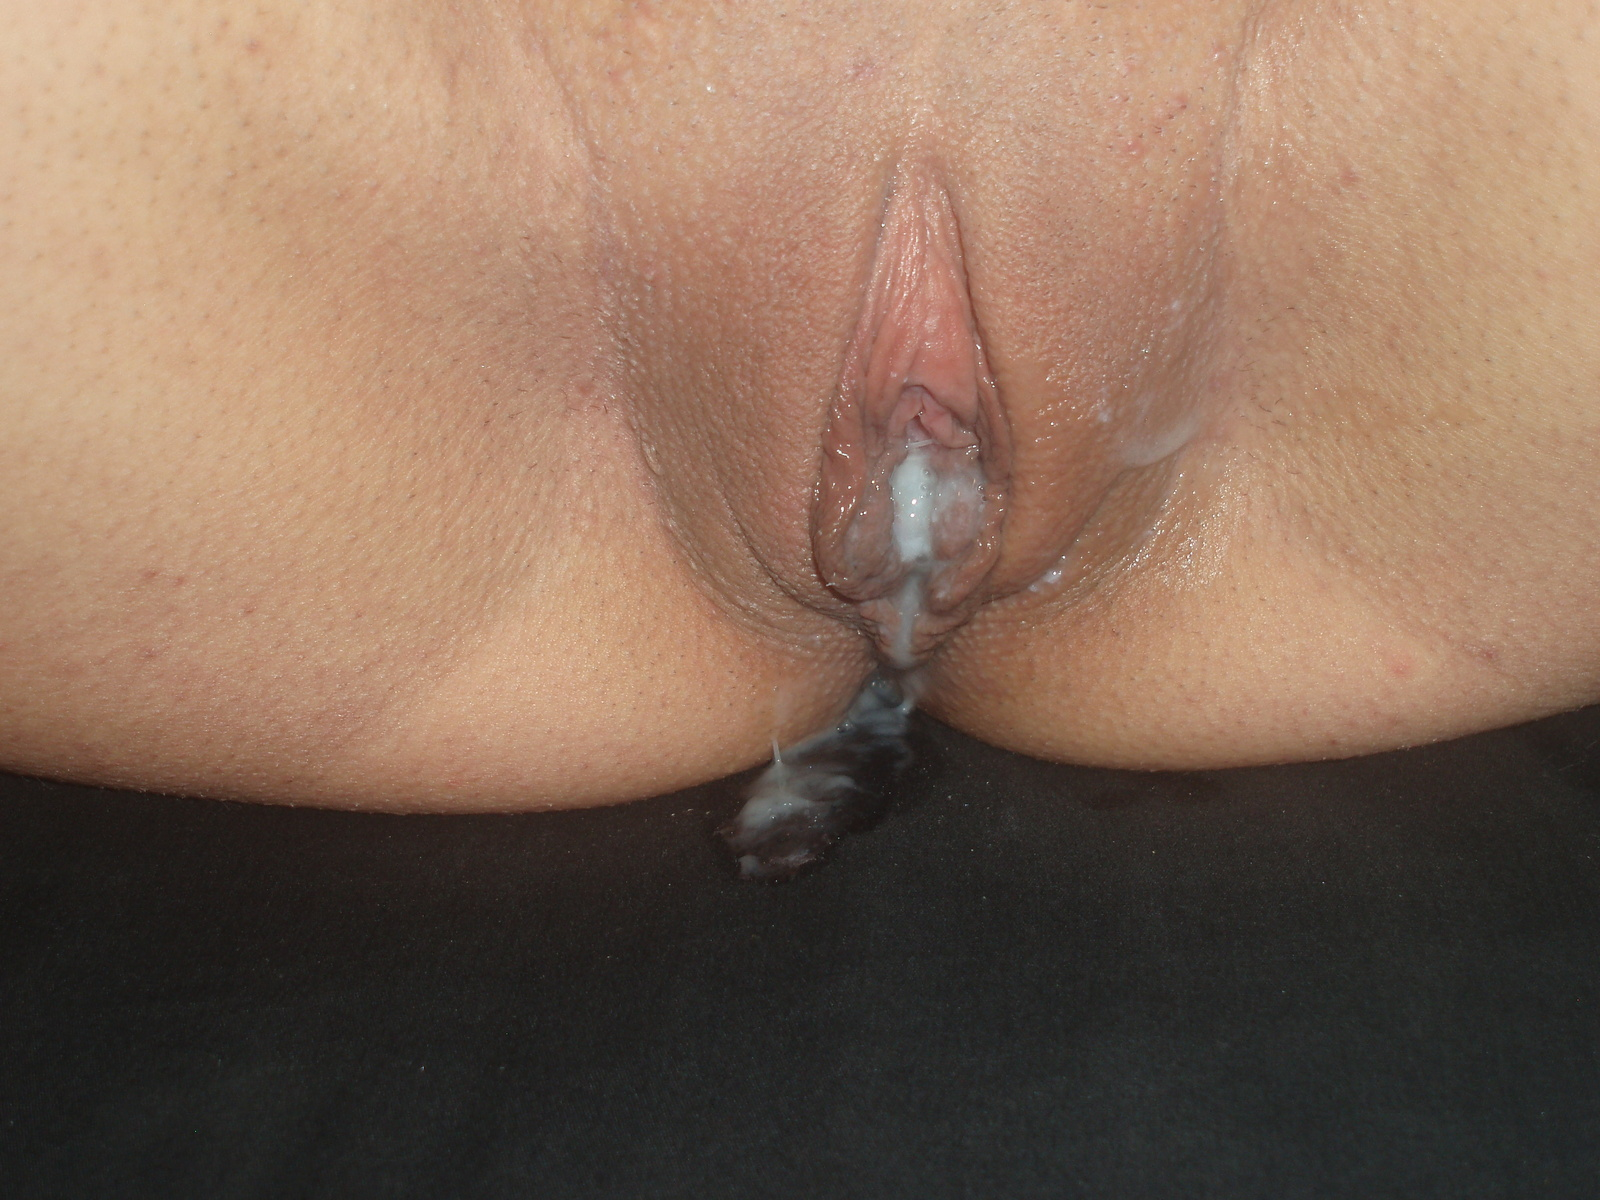 wet hot creampied pussy